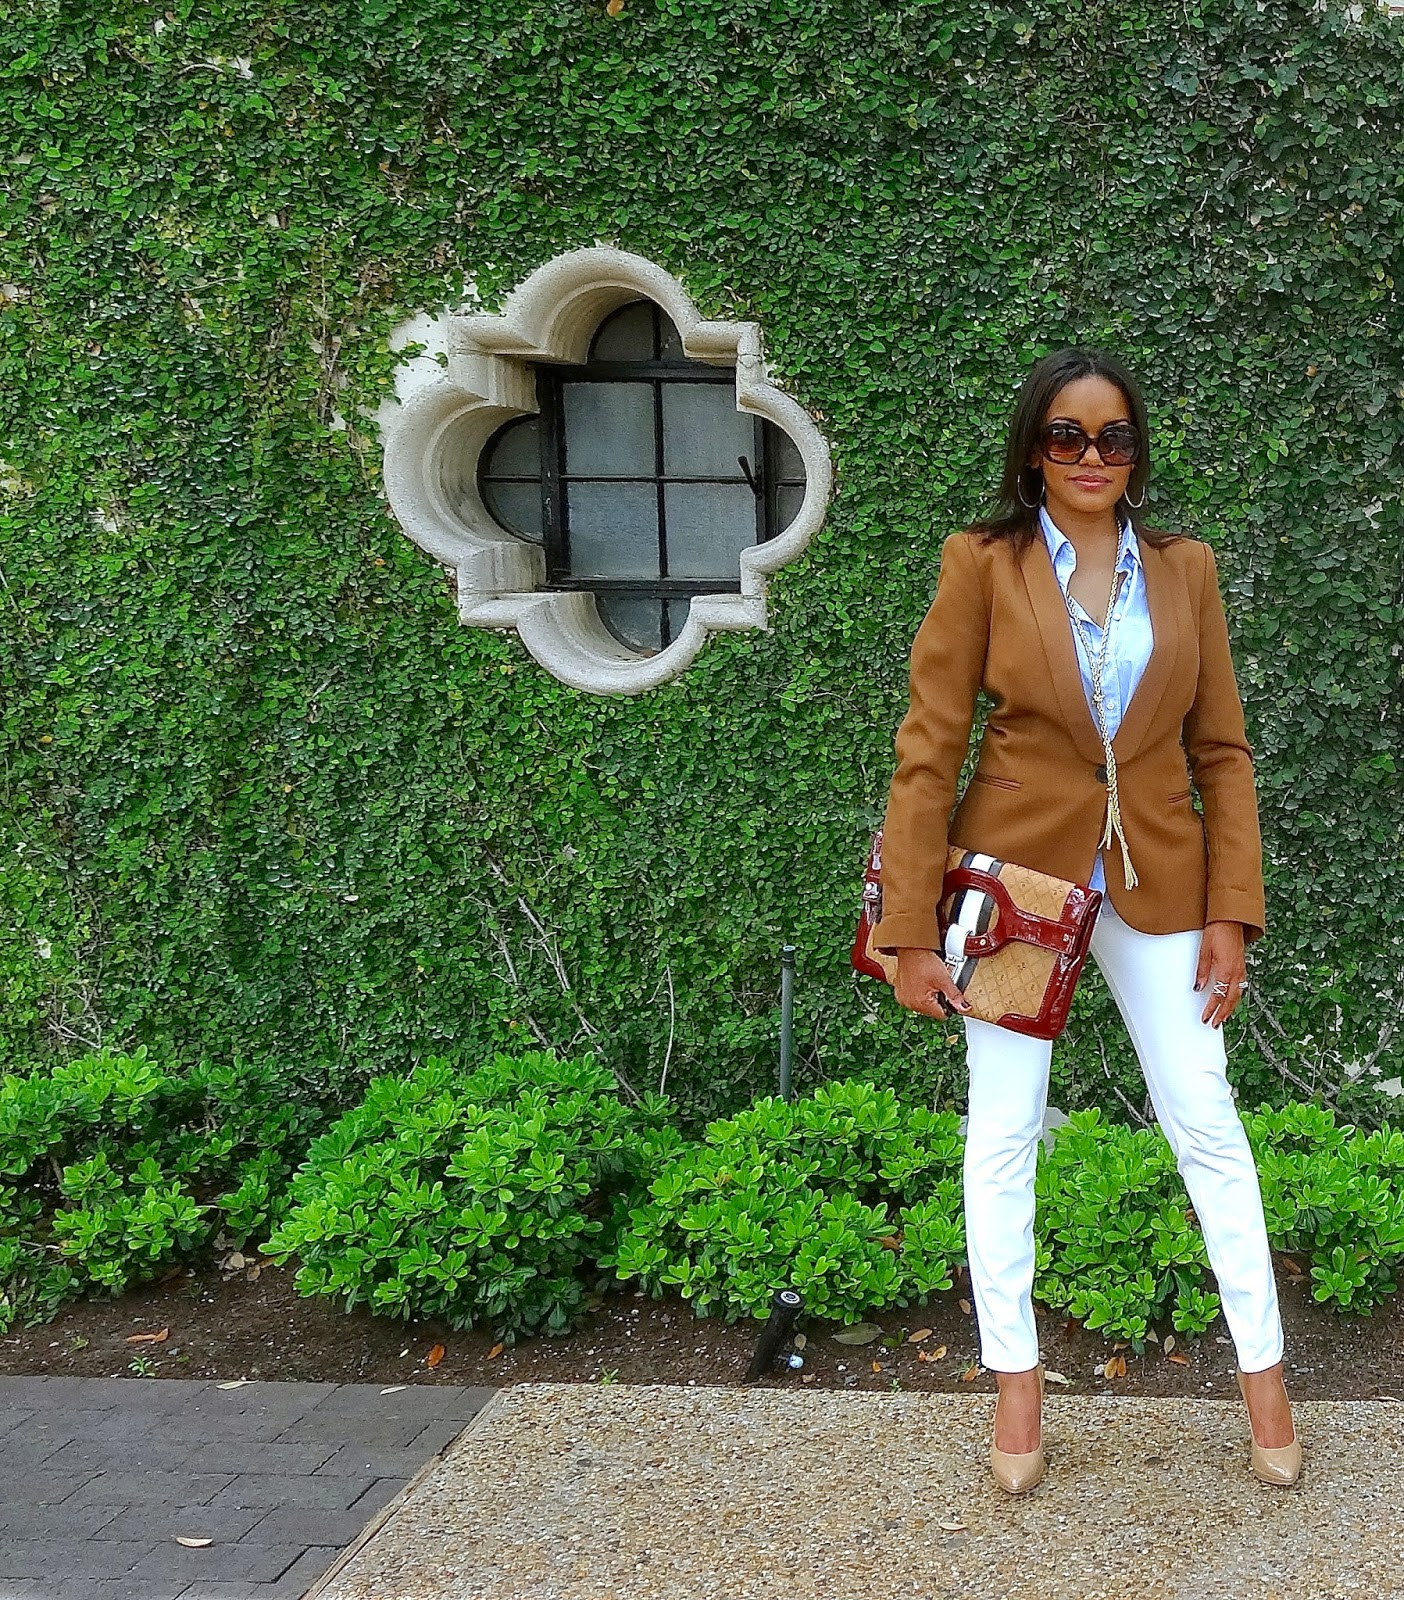 DALLAS FASHION BLOGGER, FASHION BLOGGER, DETROIT FASHION BLOGGER, DALLAS, NINE WEST LOVE FURY, H&M, WHITE JEANS, SPRING TREND, L.A.M.B., TASSEL NECKLACE, HIGHLAND PARK VILLAGE, STATEMENT BAG, ZARA BLAZER, ZARA, NUDE PUMPS